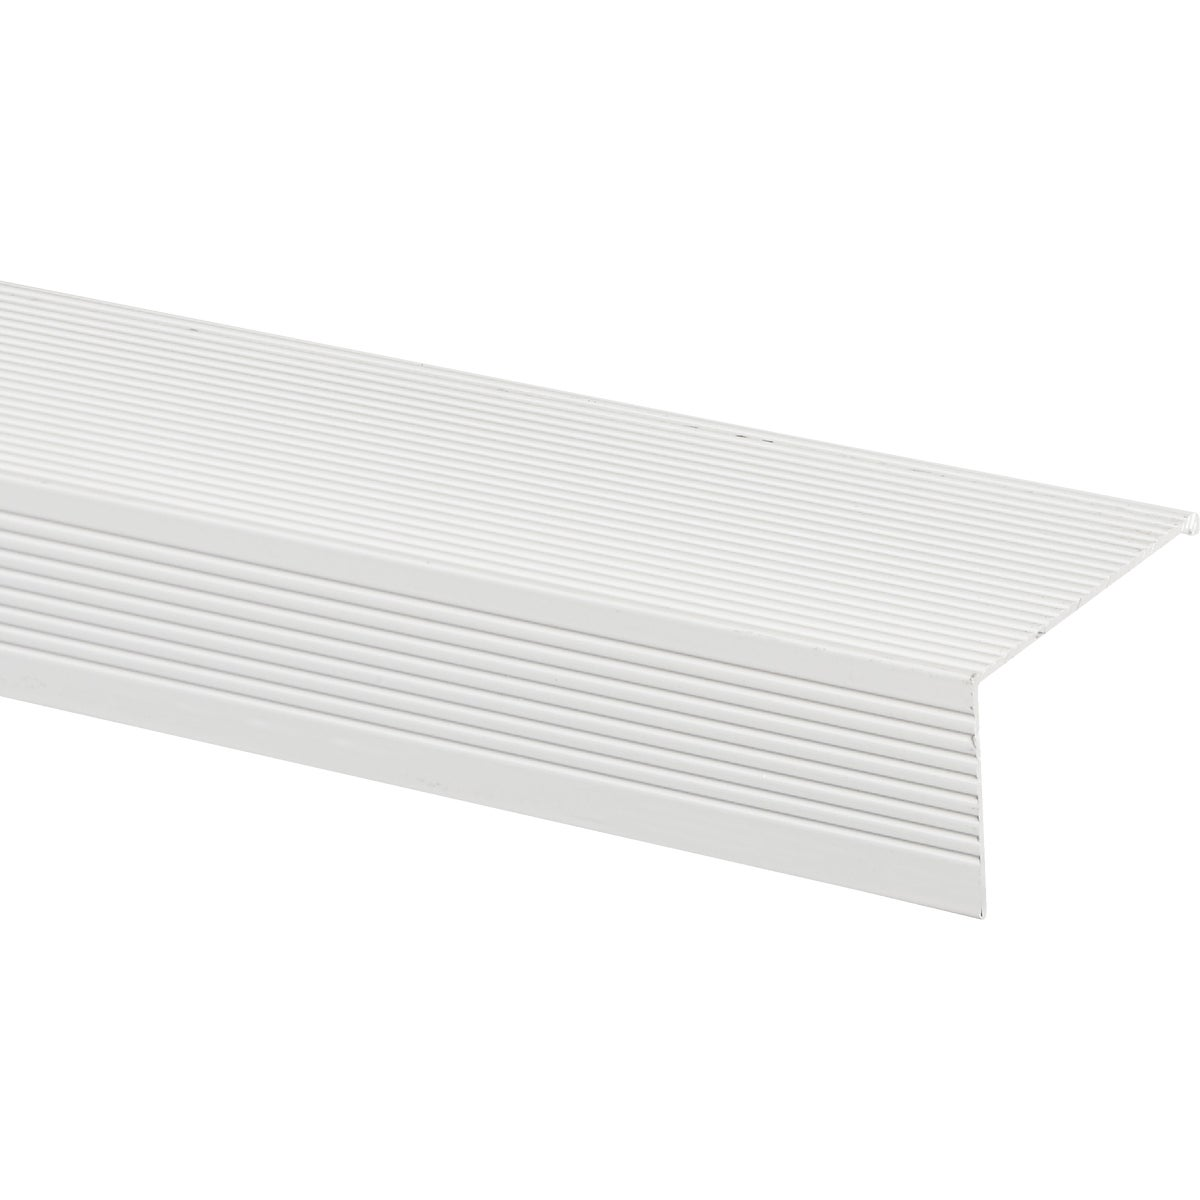 2-3/4X3 WHT SILL NOSING - 77883 by M D Building Prod